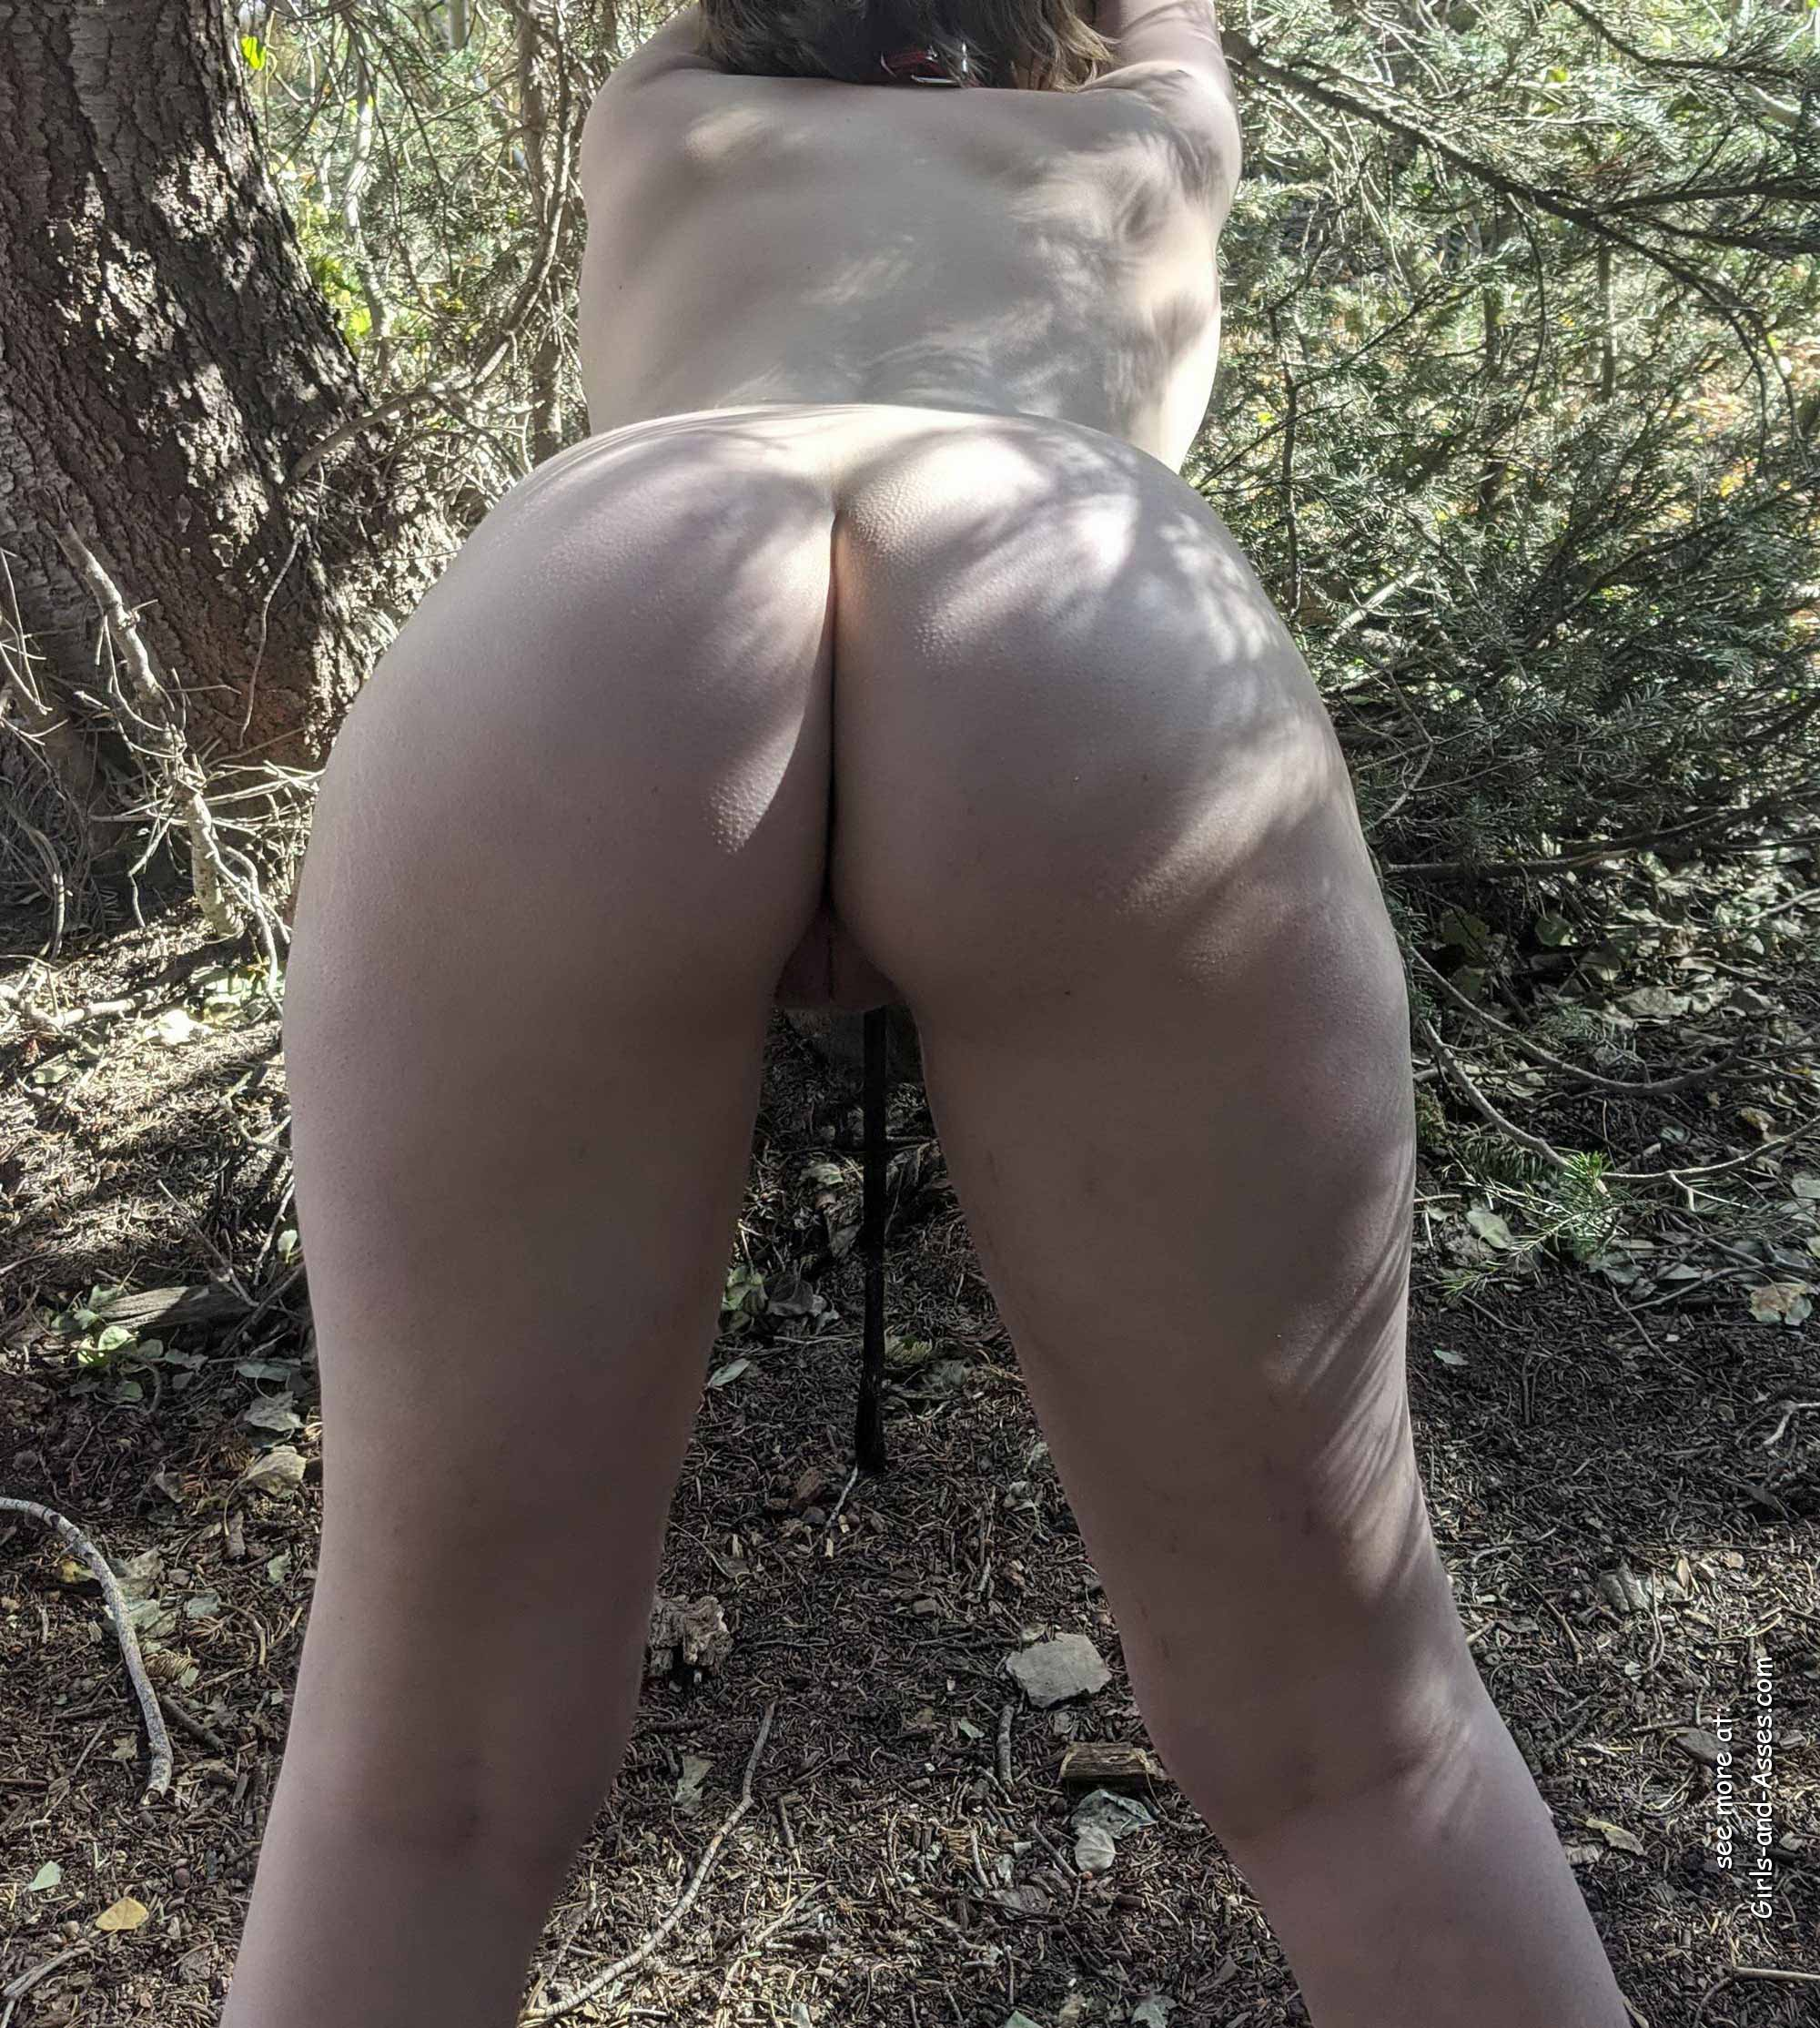 naked girl in doggystyle position in the forest photo 03851